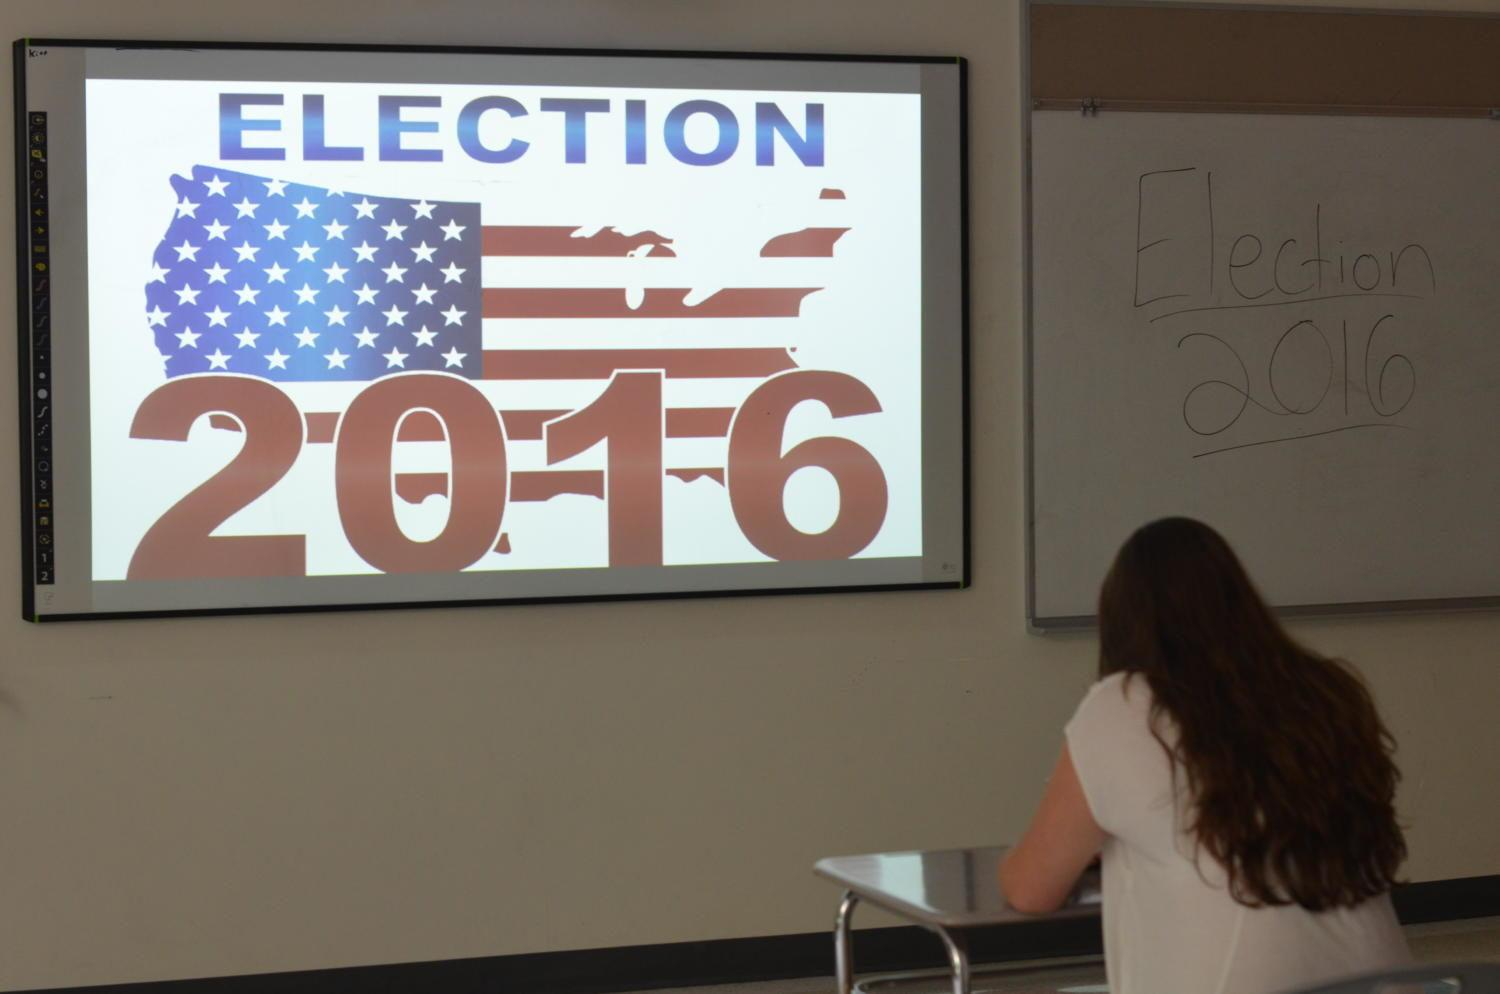 Photo+Illustration%3A+A+student+sits+at+her+desk+as+her+class+discusses+the+2016+election.